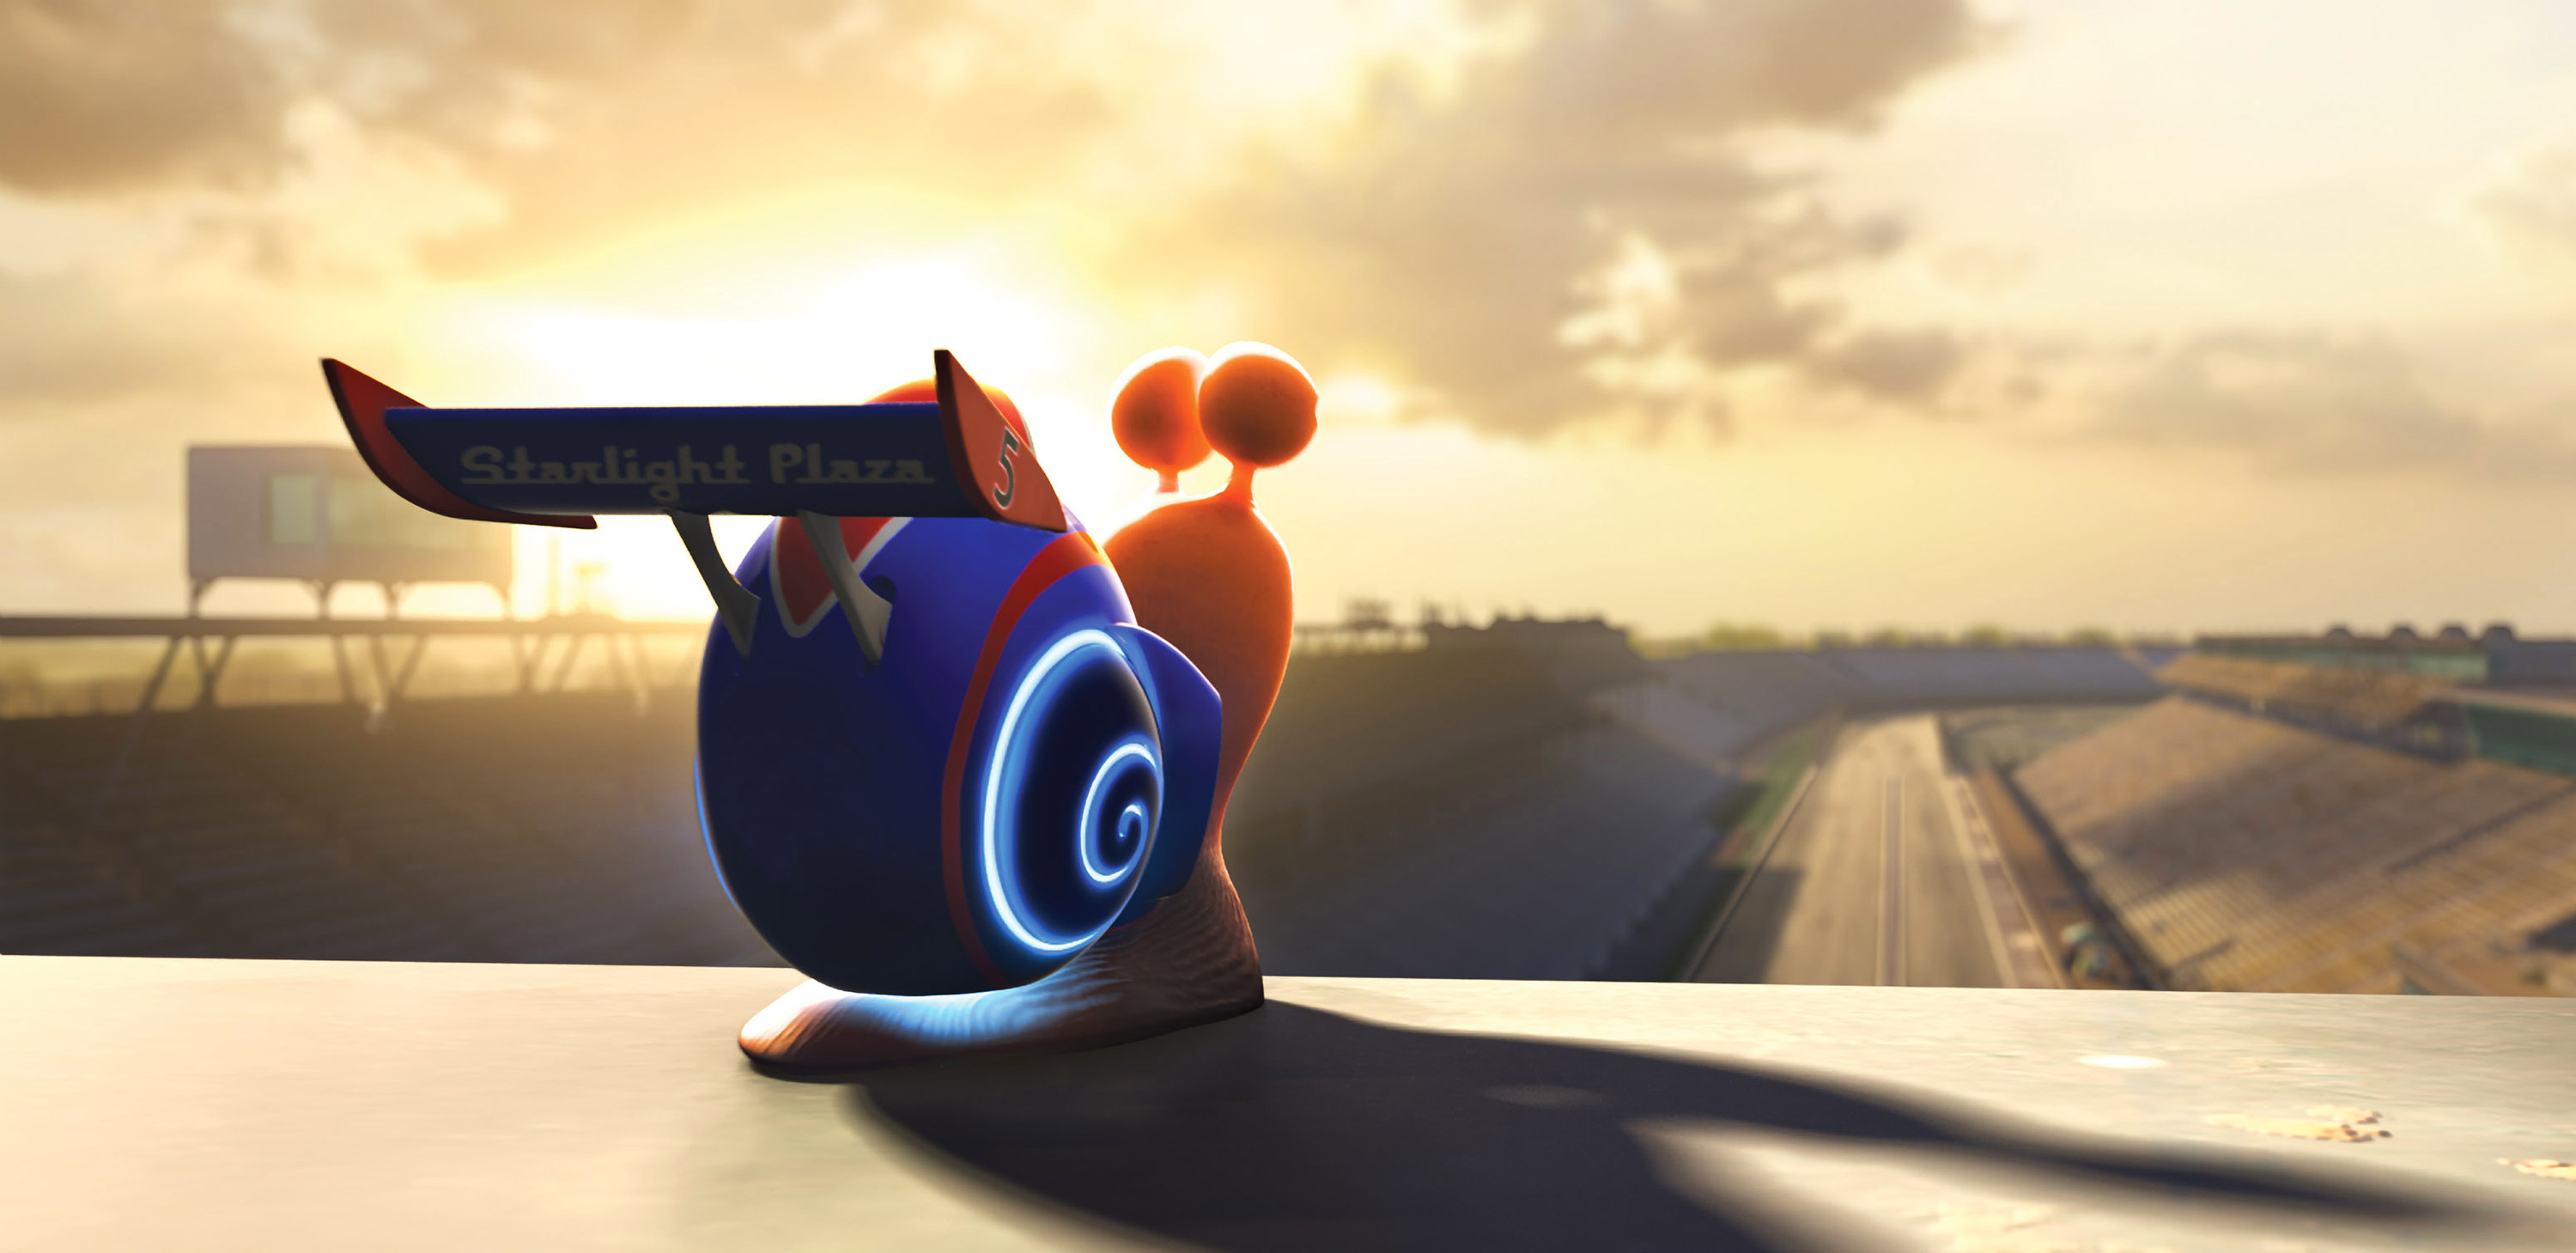 Turbo the snail overlooking a race track